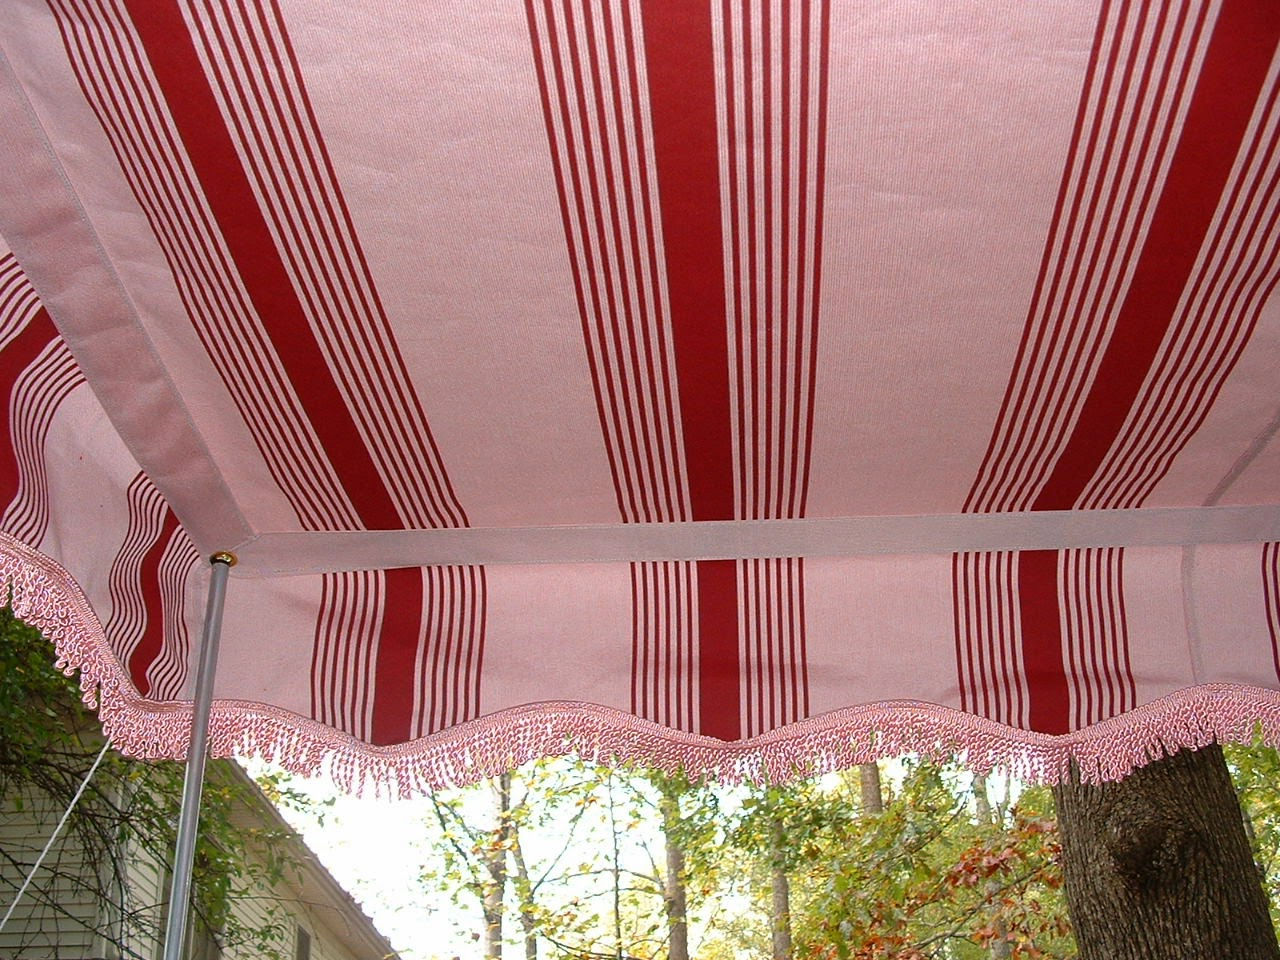 Vintage Awnings Pink Heavy Bullion Fringe On A Vintage